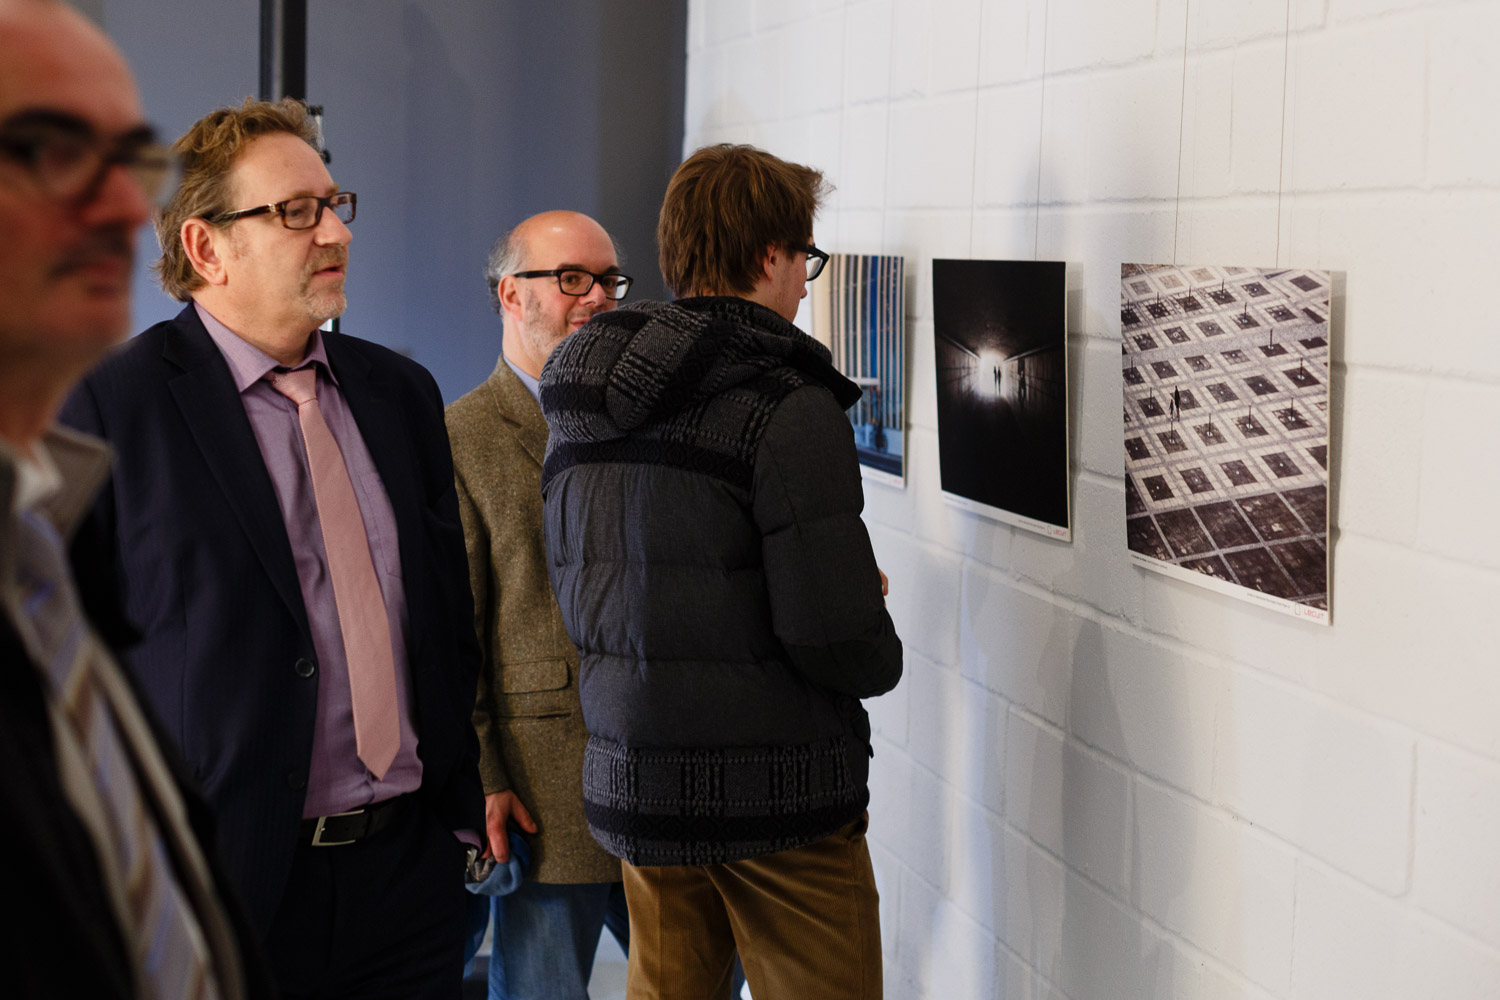 Collective exhibition by Street Photography Luxembourg at Lecuit Howald